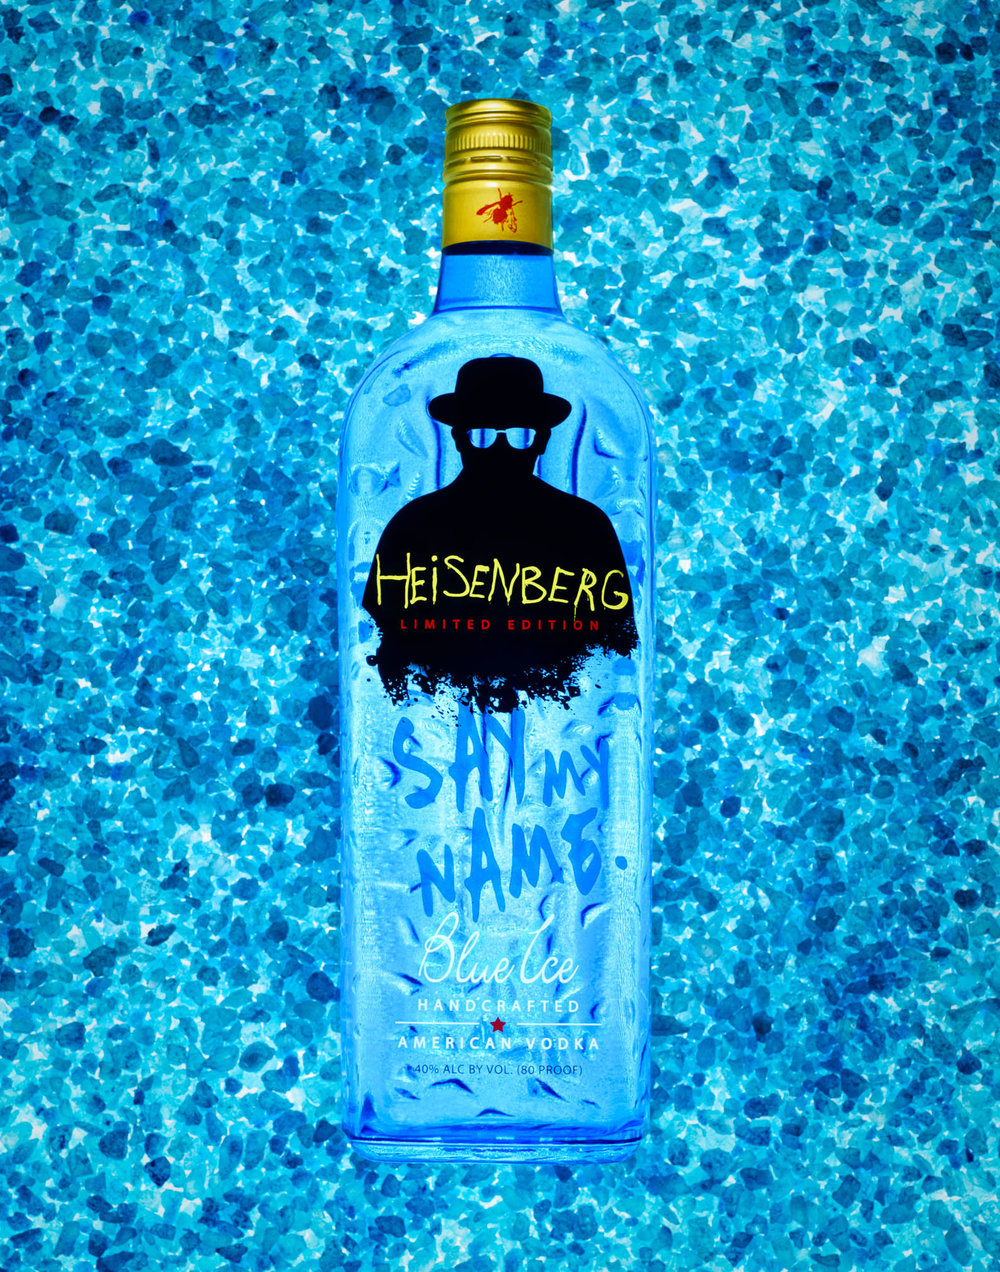 The 2017 winning image in the commercial category at the Photoshop World Guru Awards - Breaking Bad Vodka